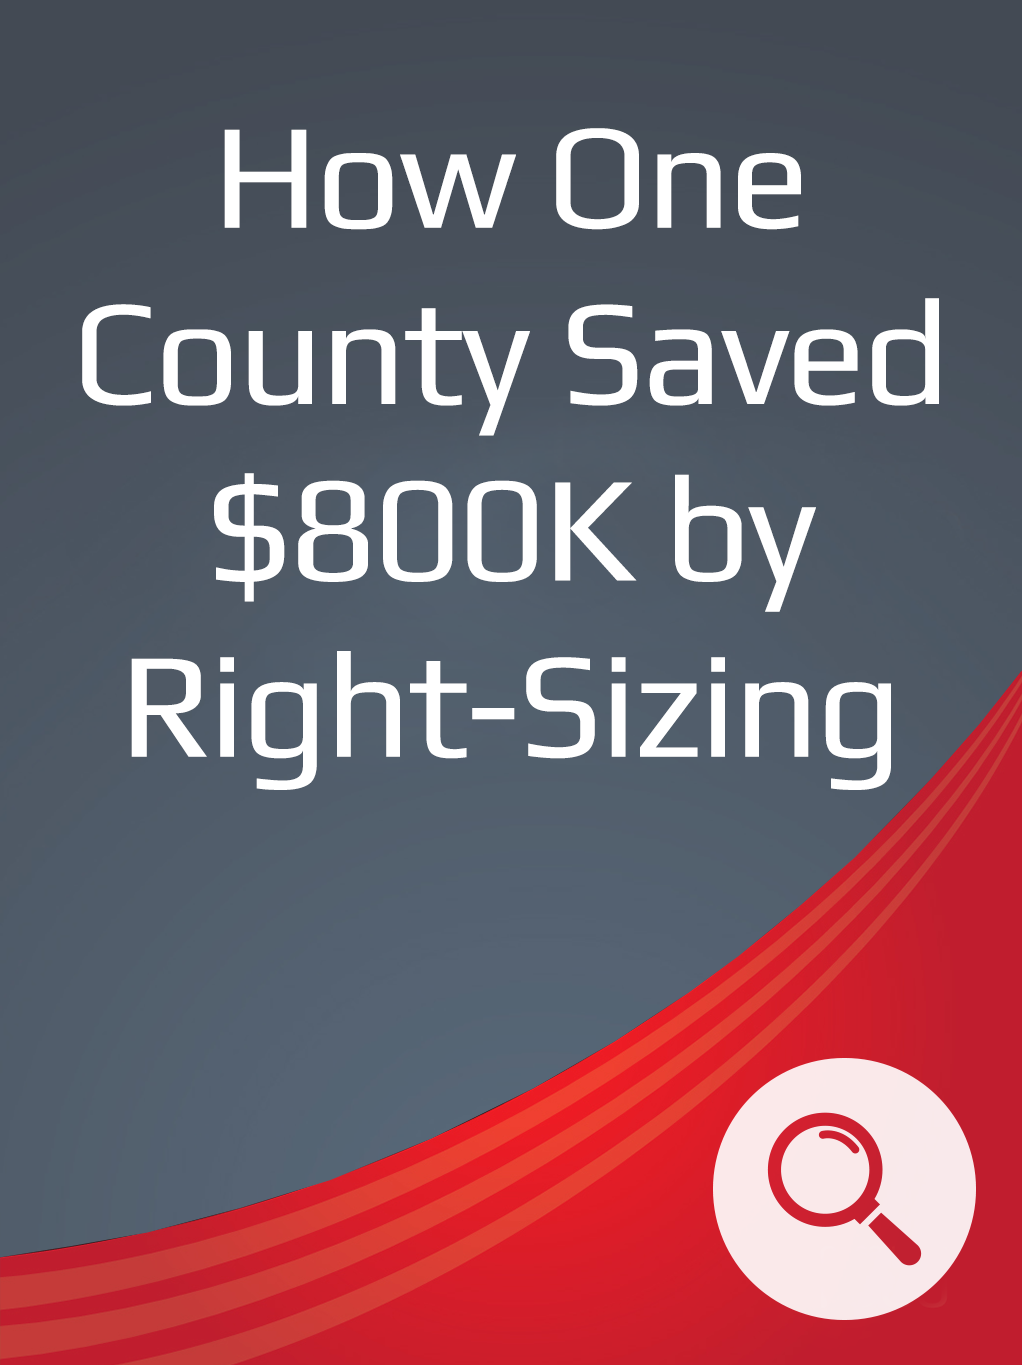 How One County Saved $800,000 by Right-Sizing